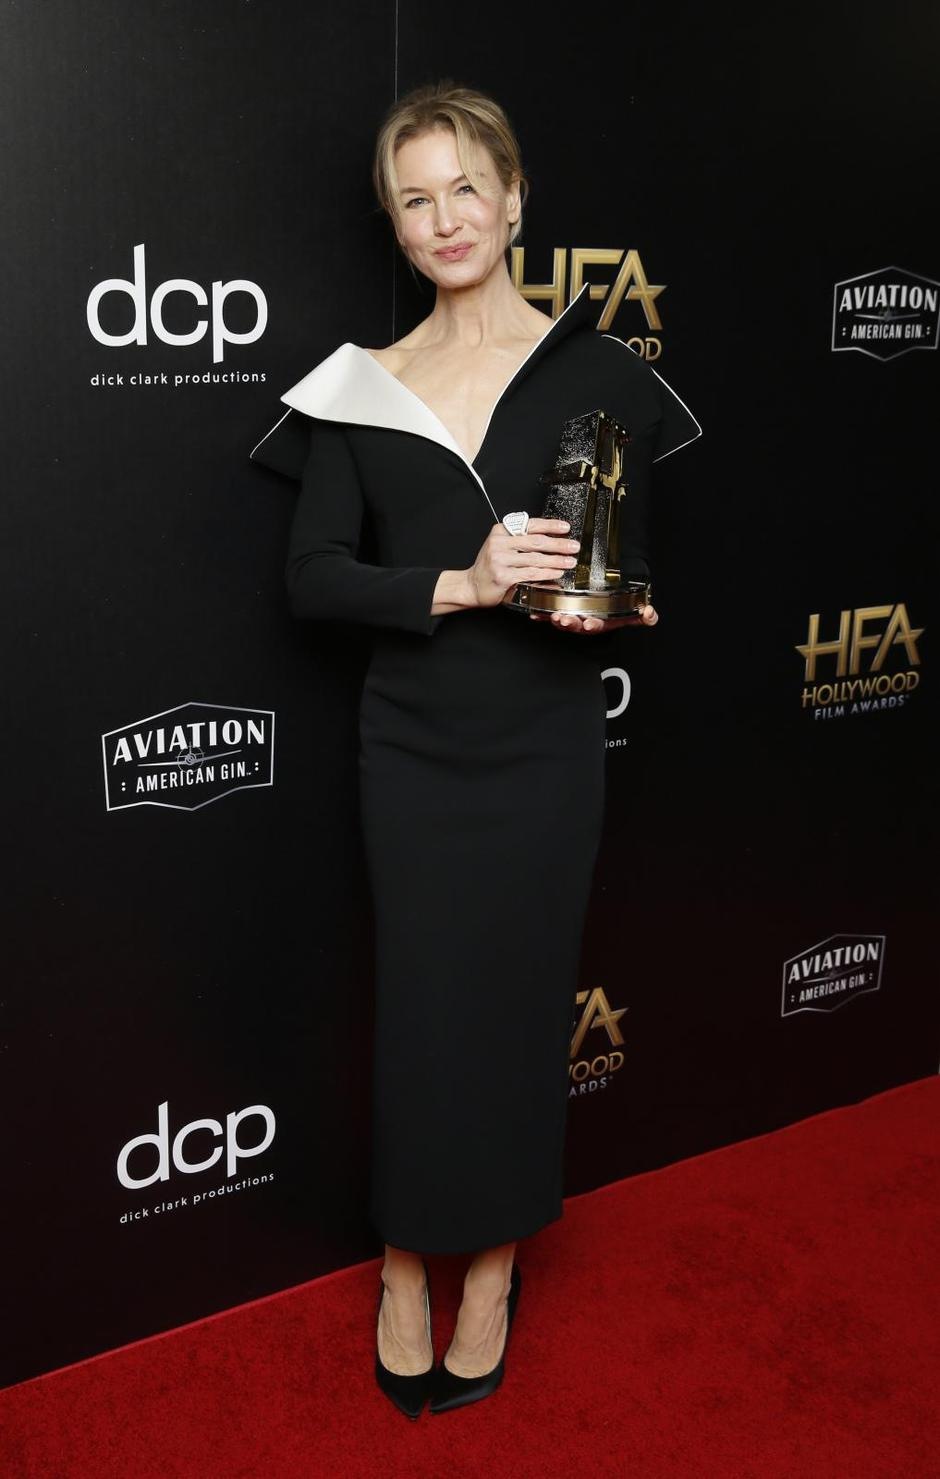 2019 Hollywood Film Awards - Photo room - Beverly Hills, California, U.S. | Autor: DANNY MOLOSHOK/REUTERS/PIXSELL/REUTERS/PIXSELL